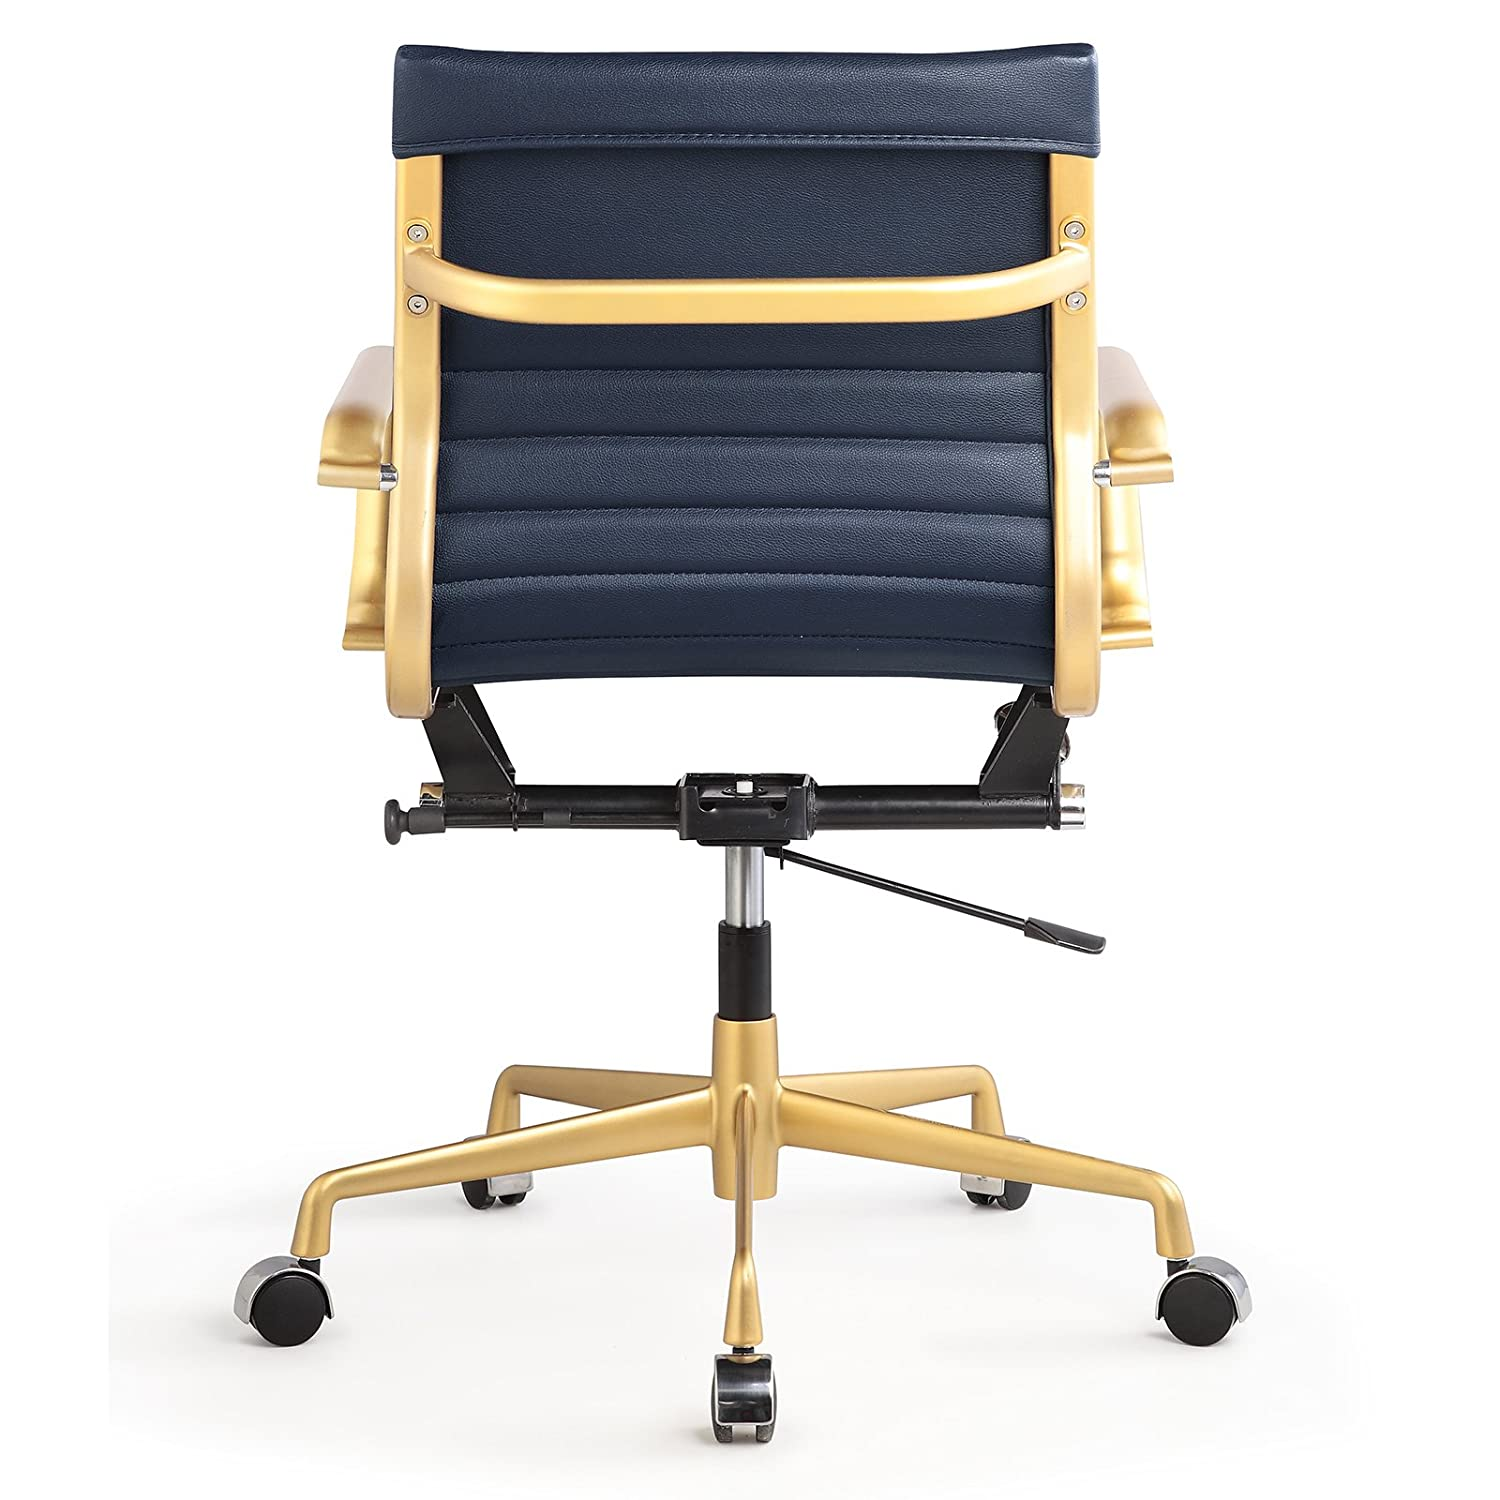 Beautiful Amazon.com: Meelano 348 GD NVY Office Chair In Vegan Leather, Gold/Navy  Blue: Kitchen U0026 Dining